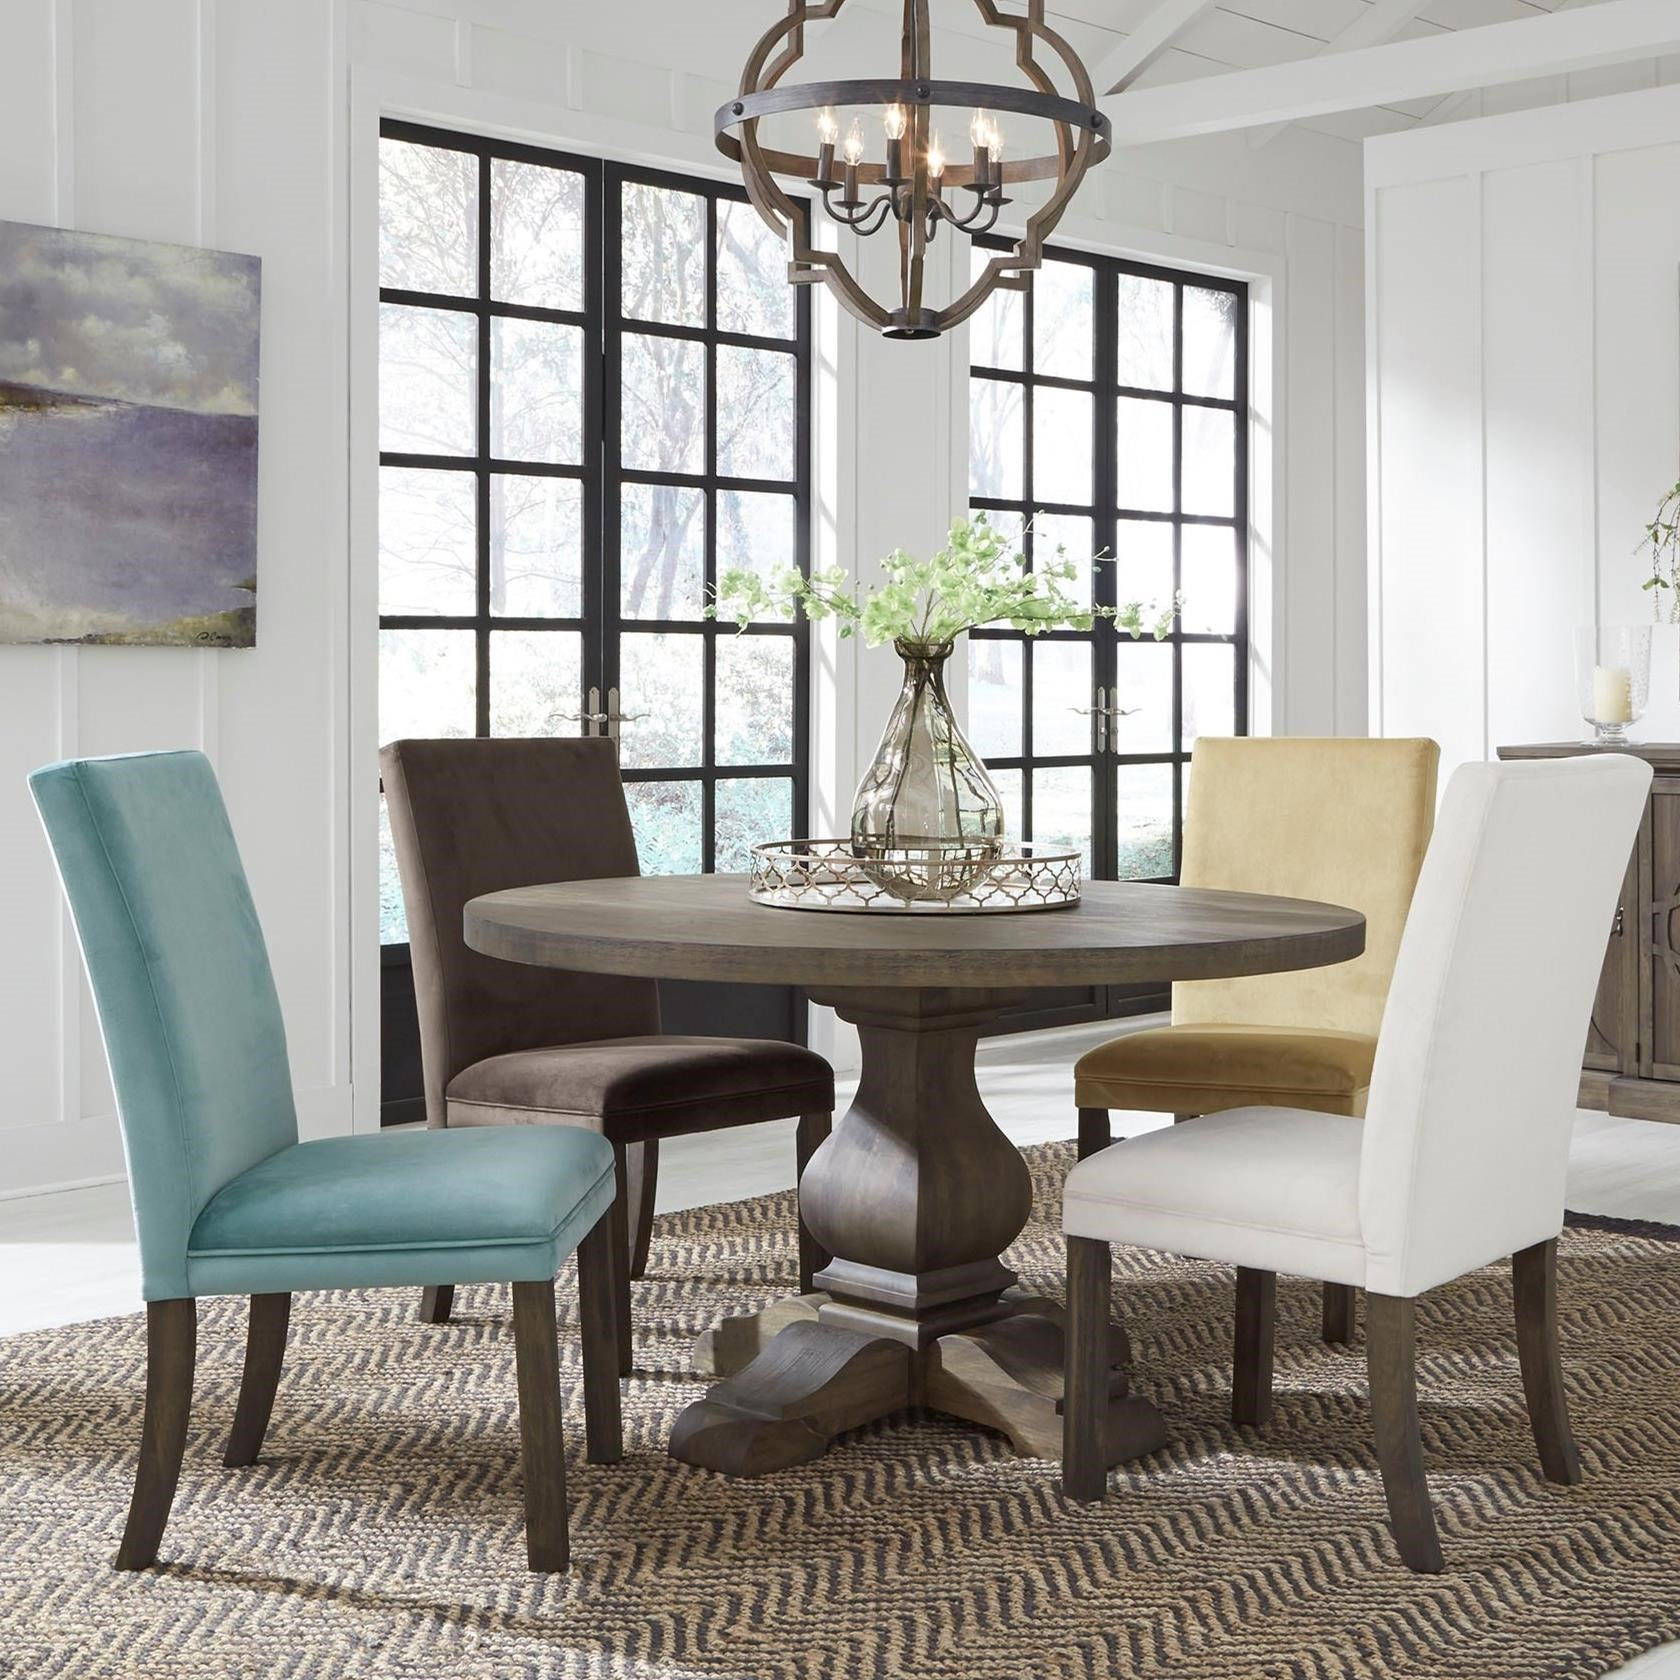 Bon Standard Furniture Trenton Casual Five Piece Dining Set With Round Table